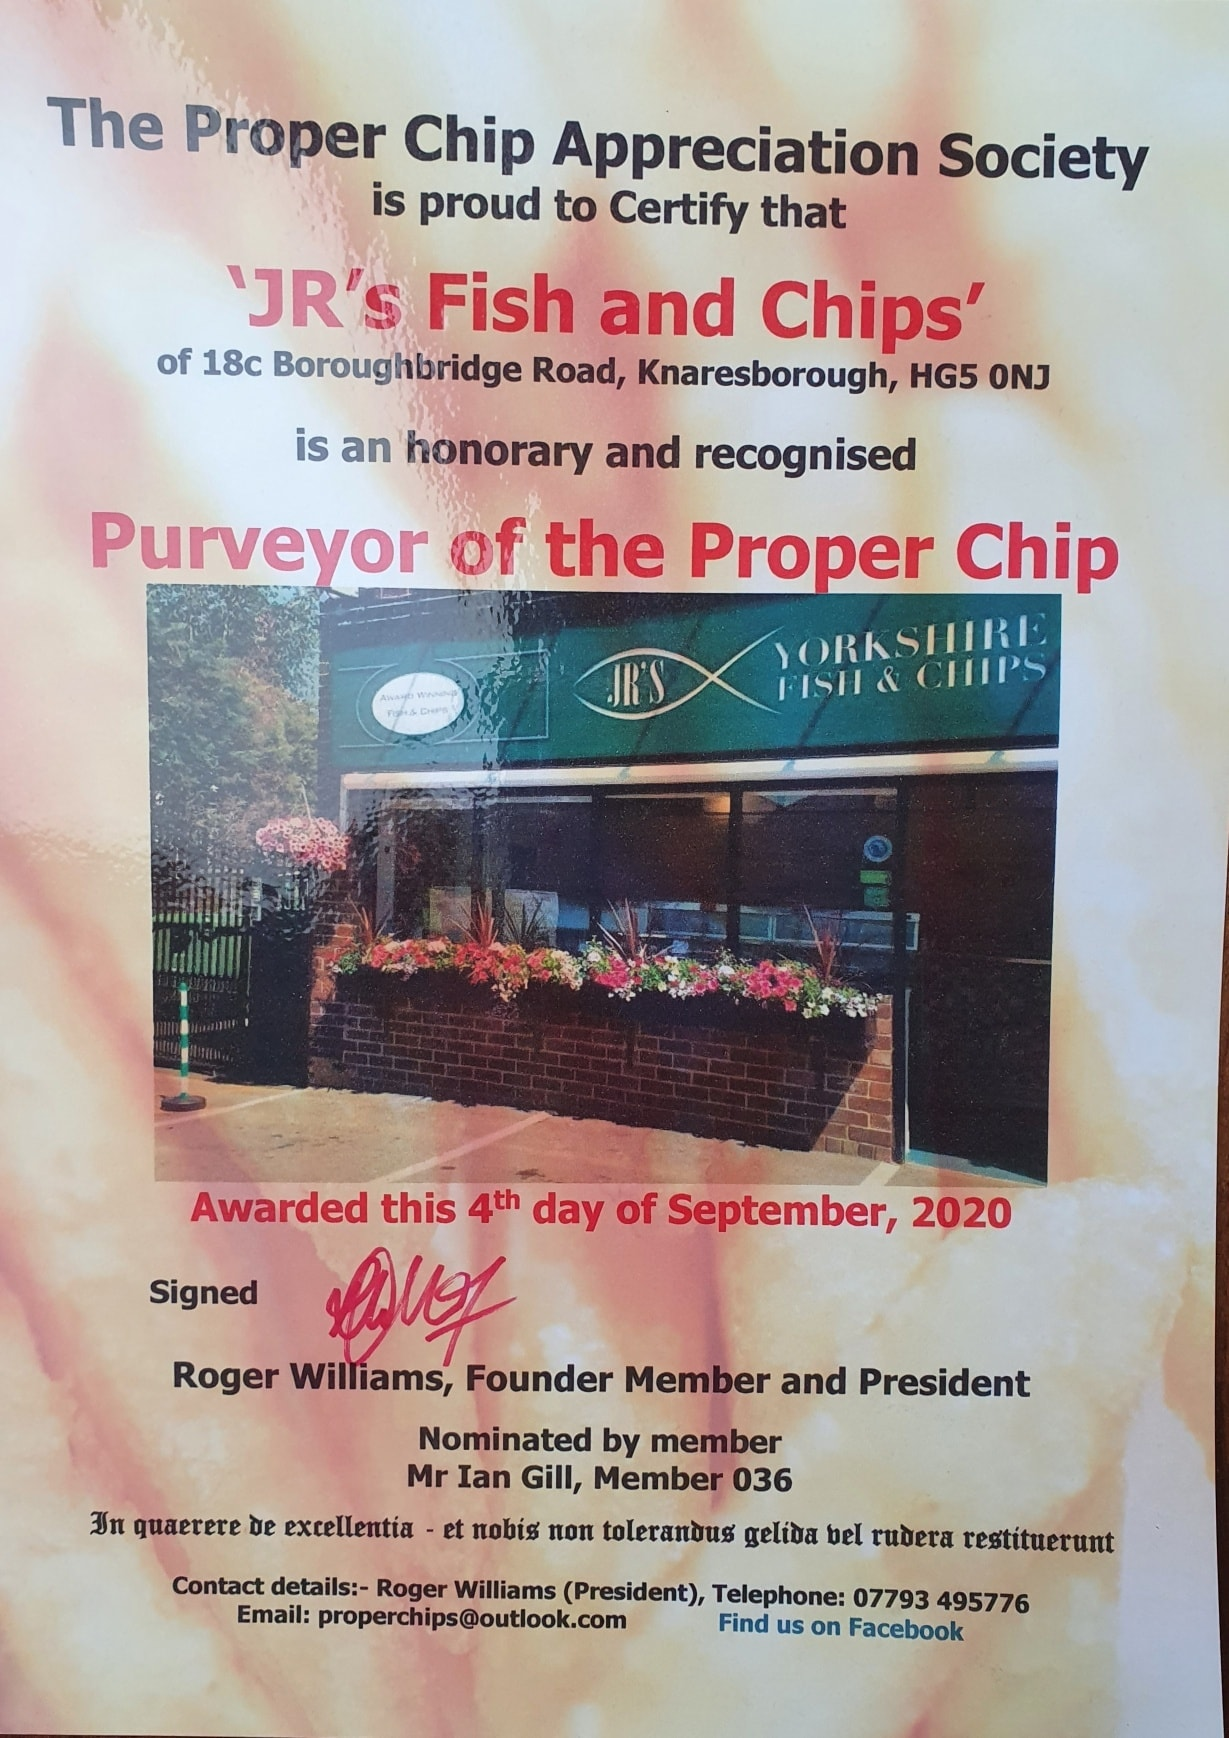 Proper Chip Appreciation Society: JR's Fish and Chips is an honarary and recognised Purveyor of the Proper Chip.